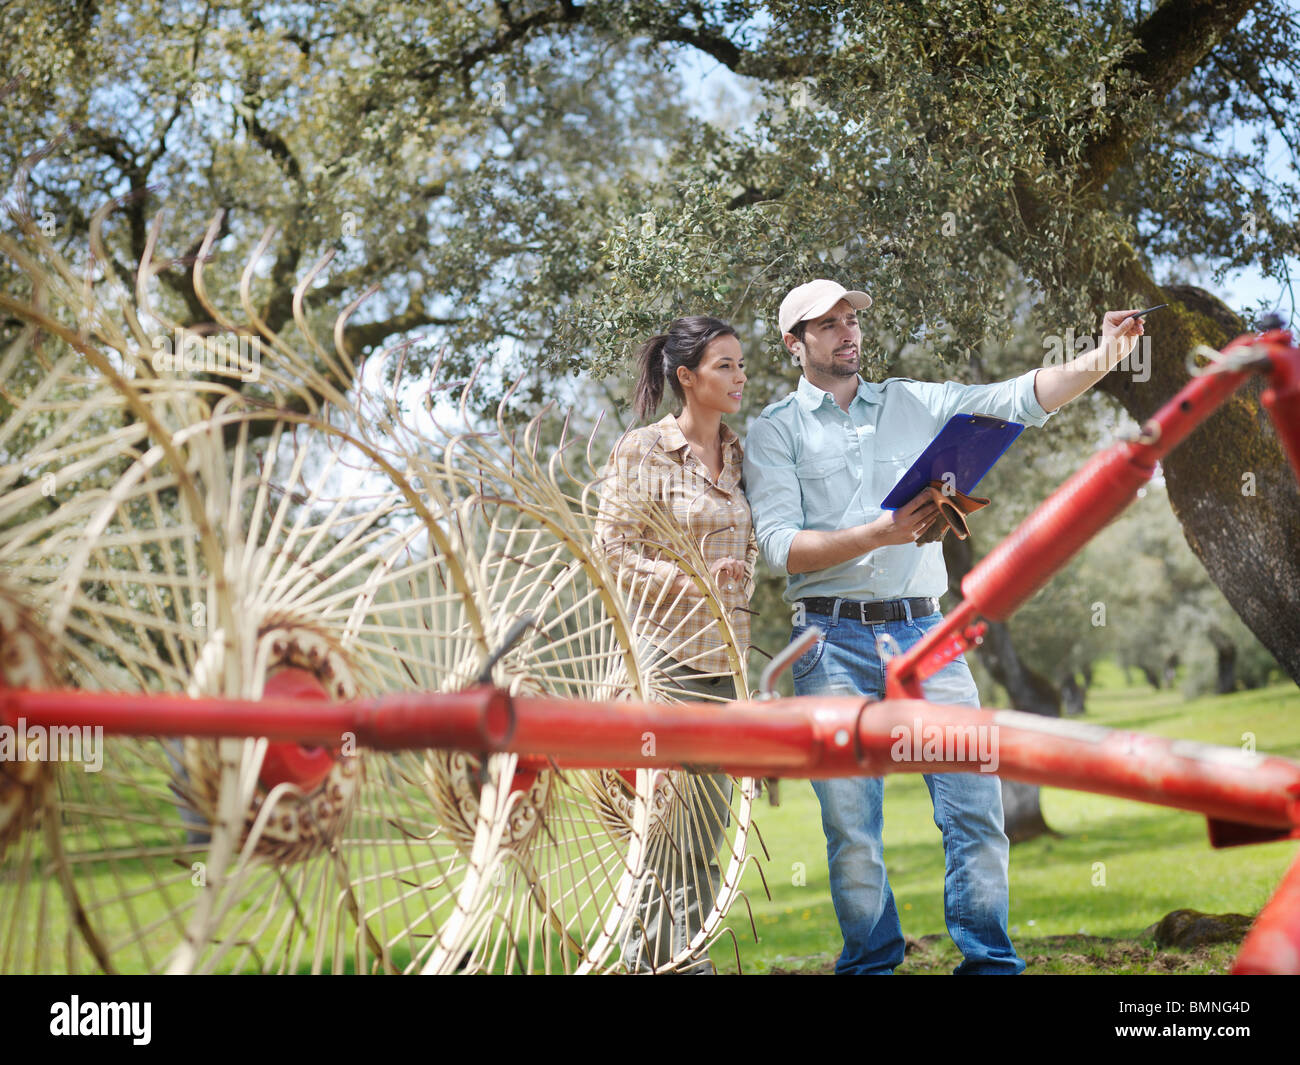 Man and woman on farm with hay rake - Stock Image